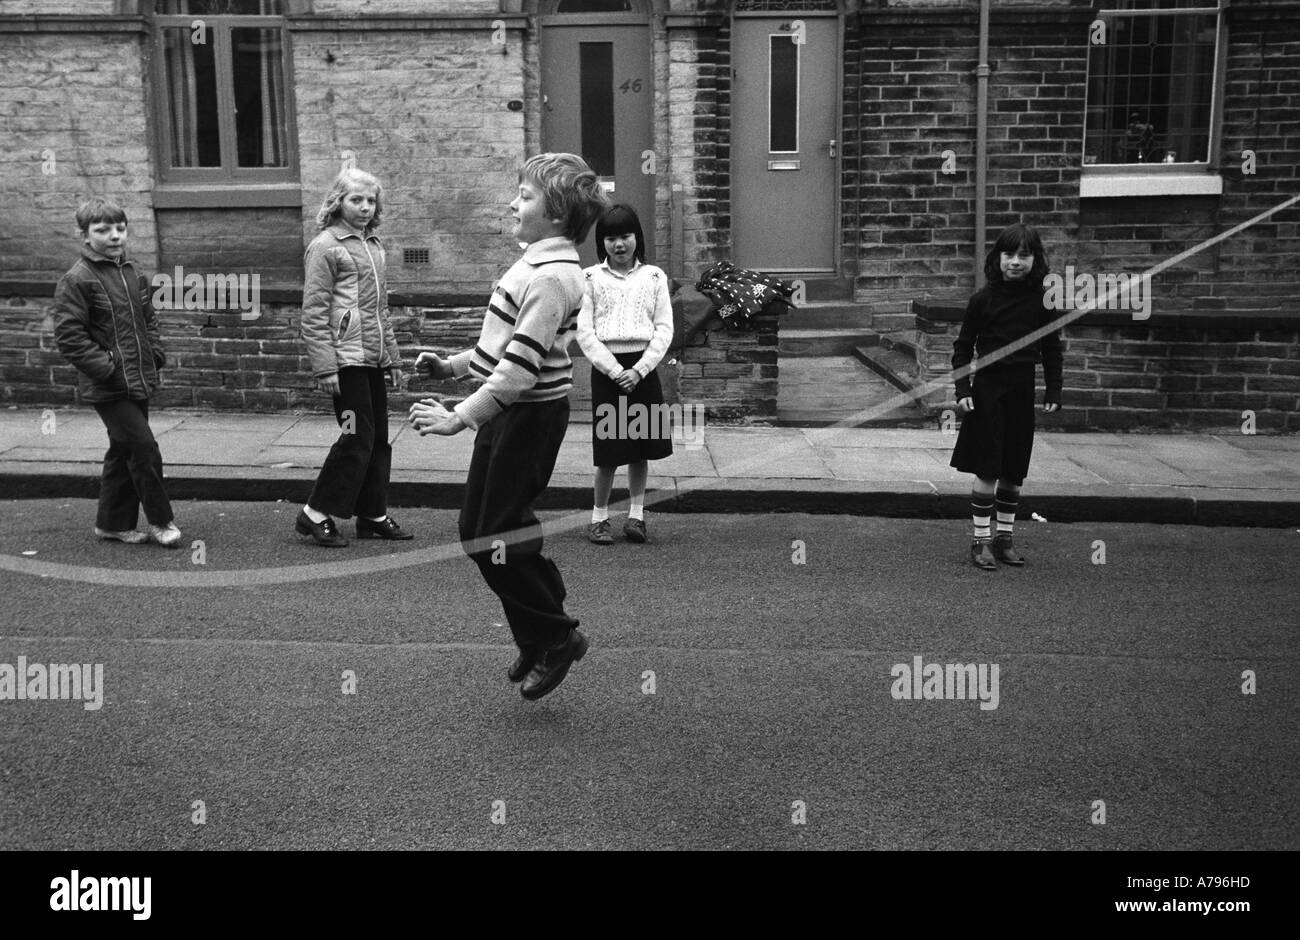 Children kids playing together skipping in the street Saltaire Bradford Yorkshire UK  1981 HOMER SYKES - Stock Image